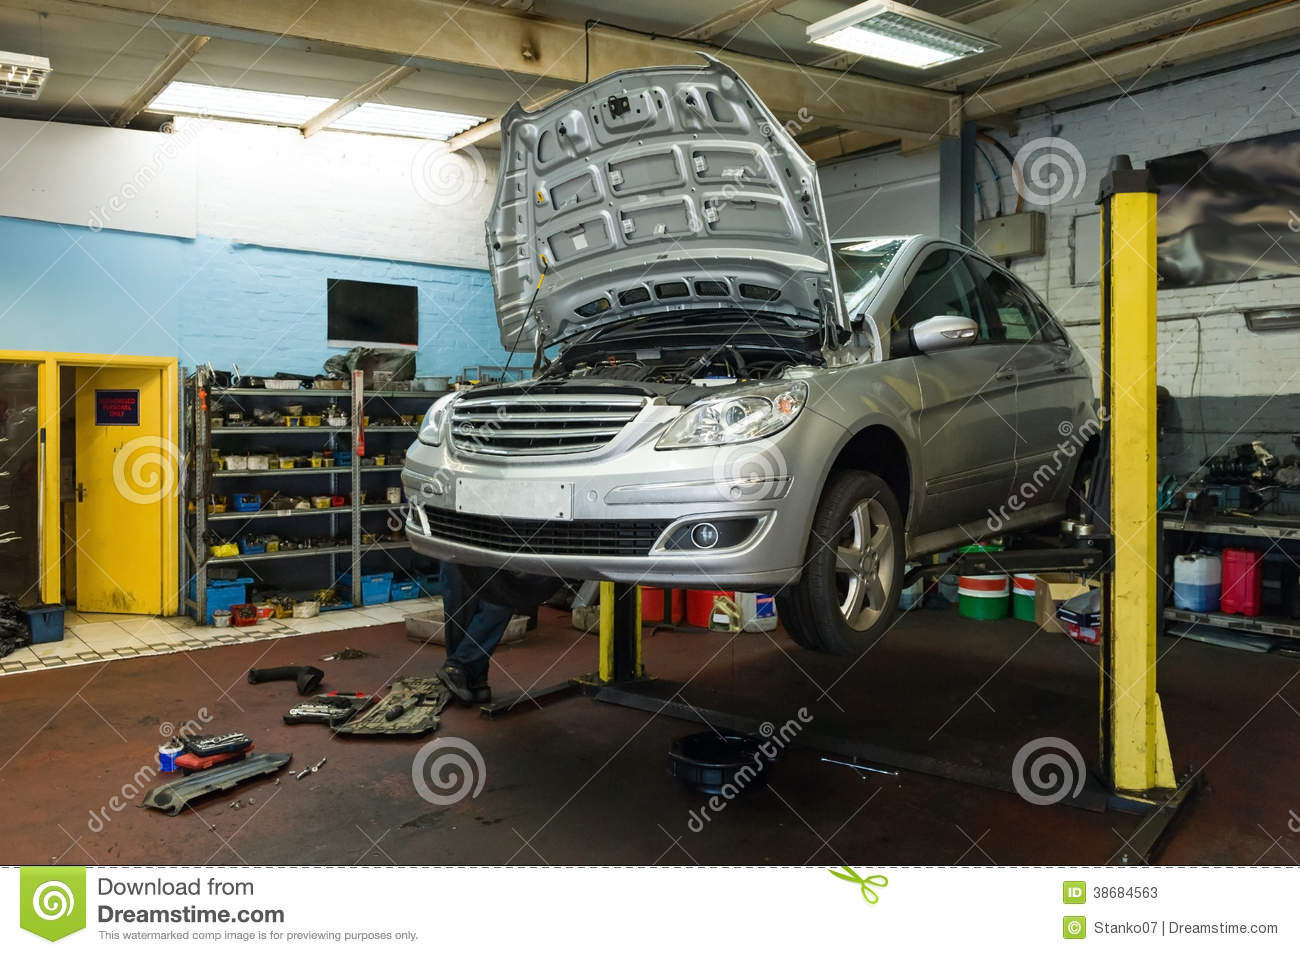 Car On A Lift In Garage Stock Photos Image 38684563